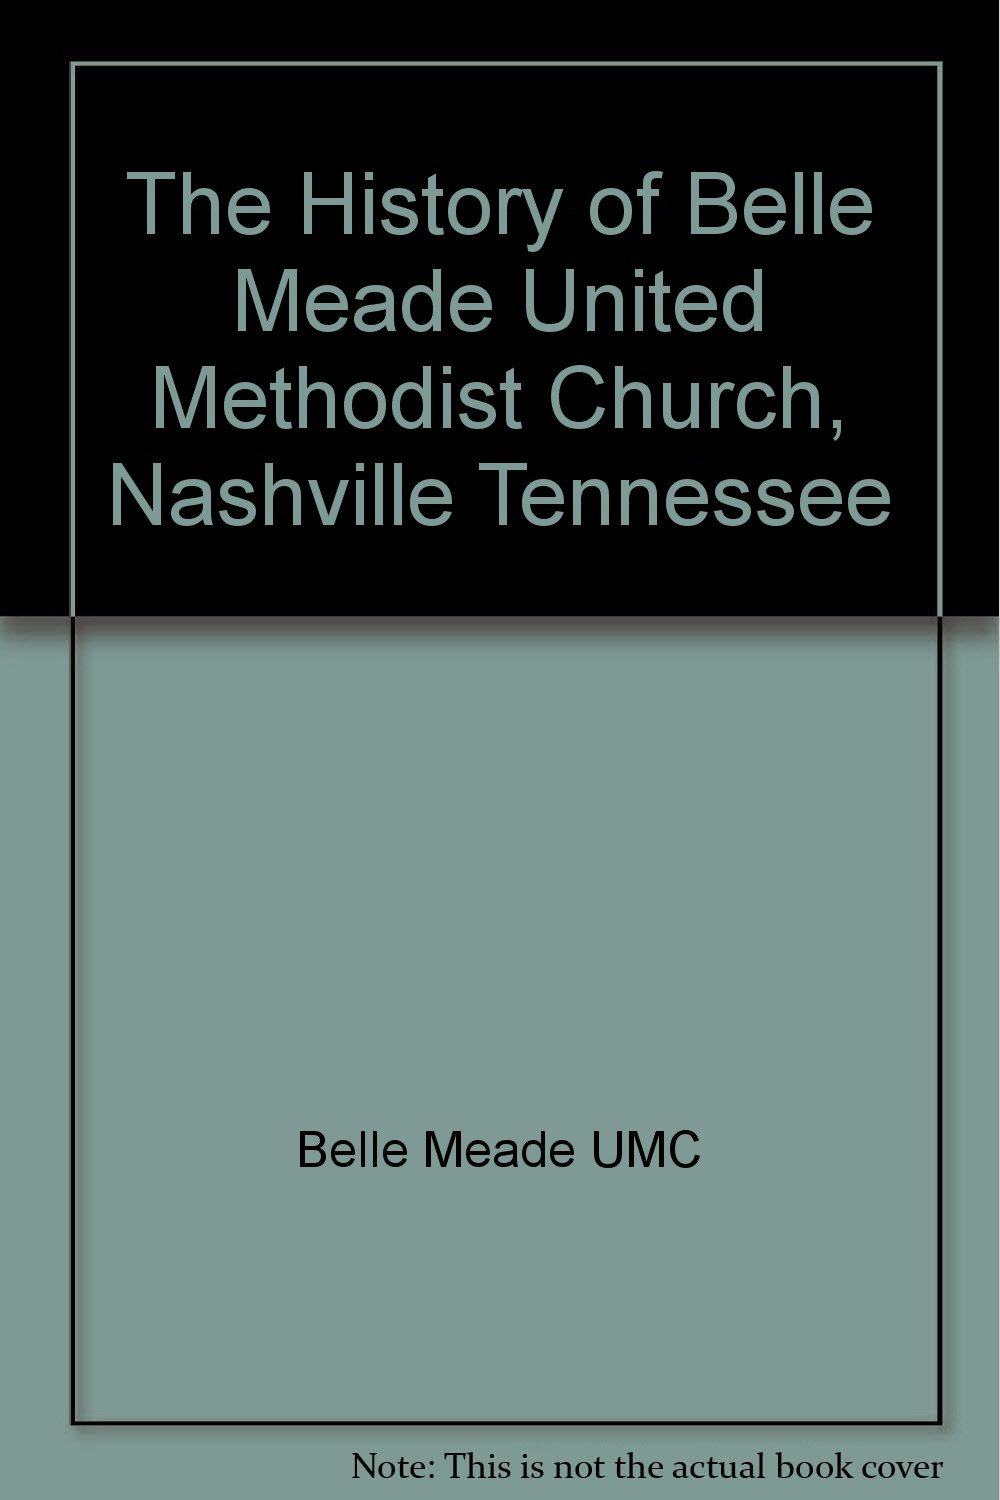 the history of belle meade united methodist church nashville